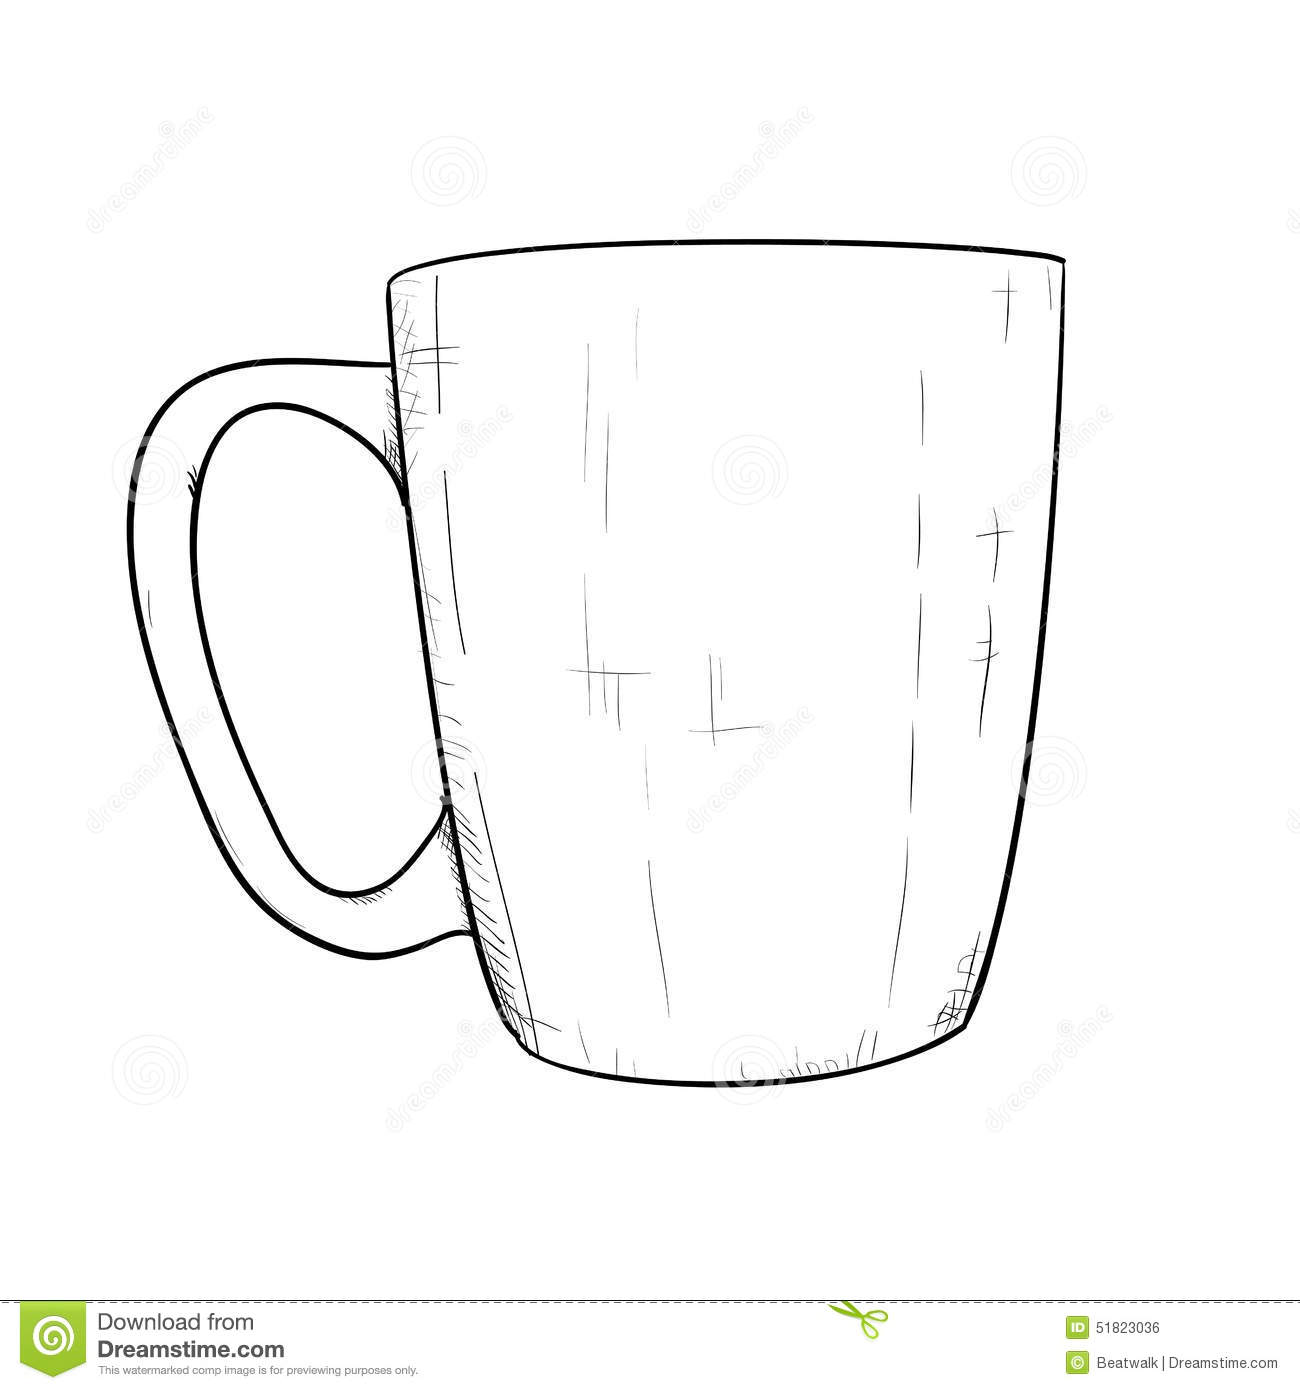 Vector sketch of cup stock vector. Illustration of ancient - 51823036